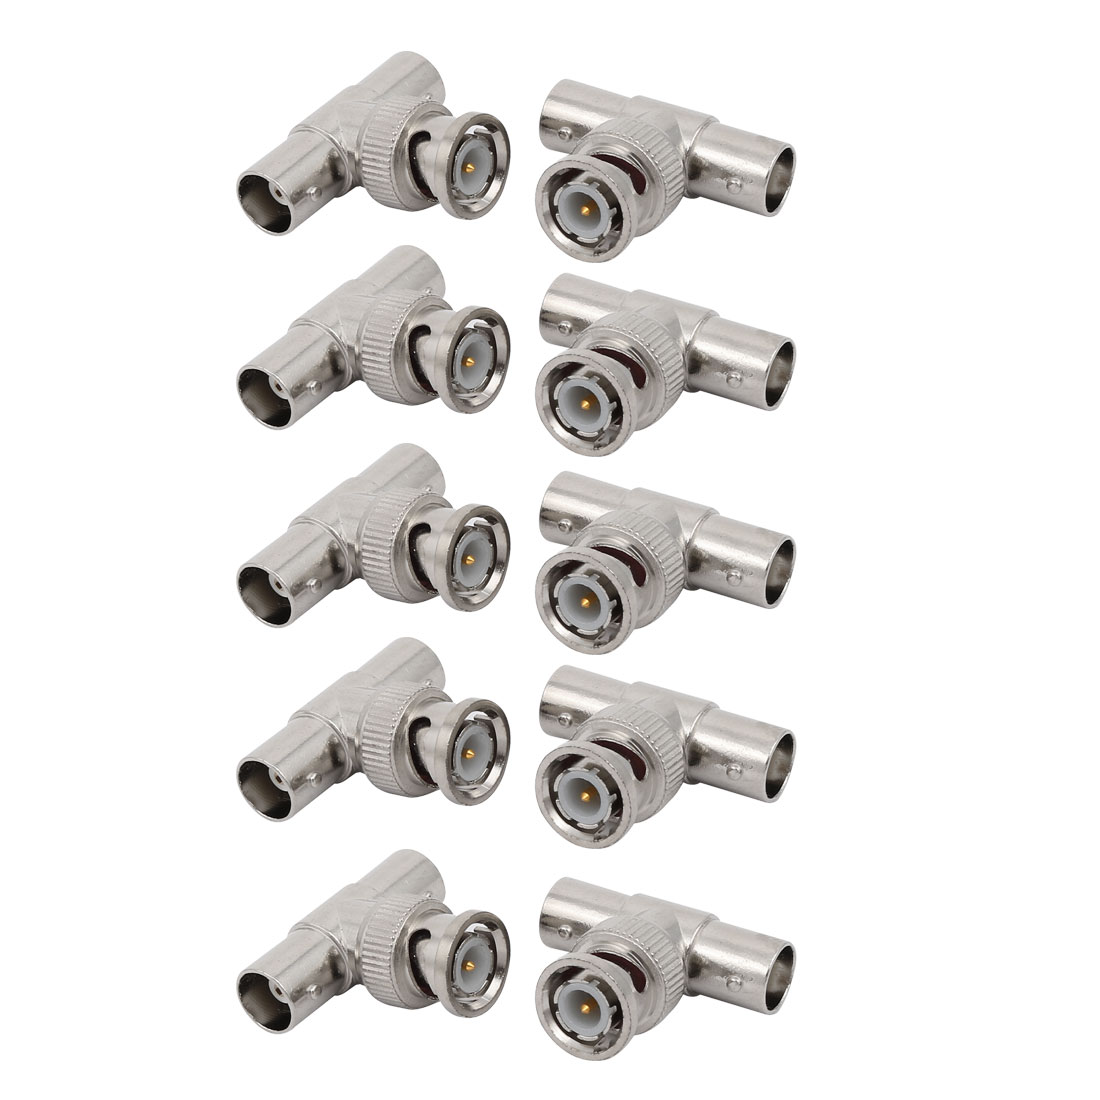 10 Pcs 3-Way BNC Male to 2 x Female Jack T-shape Coax Adapter Connector